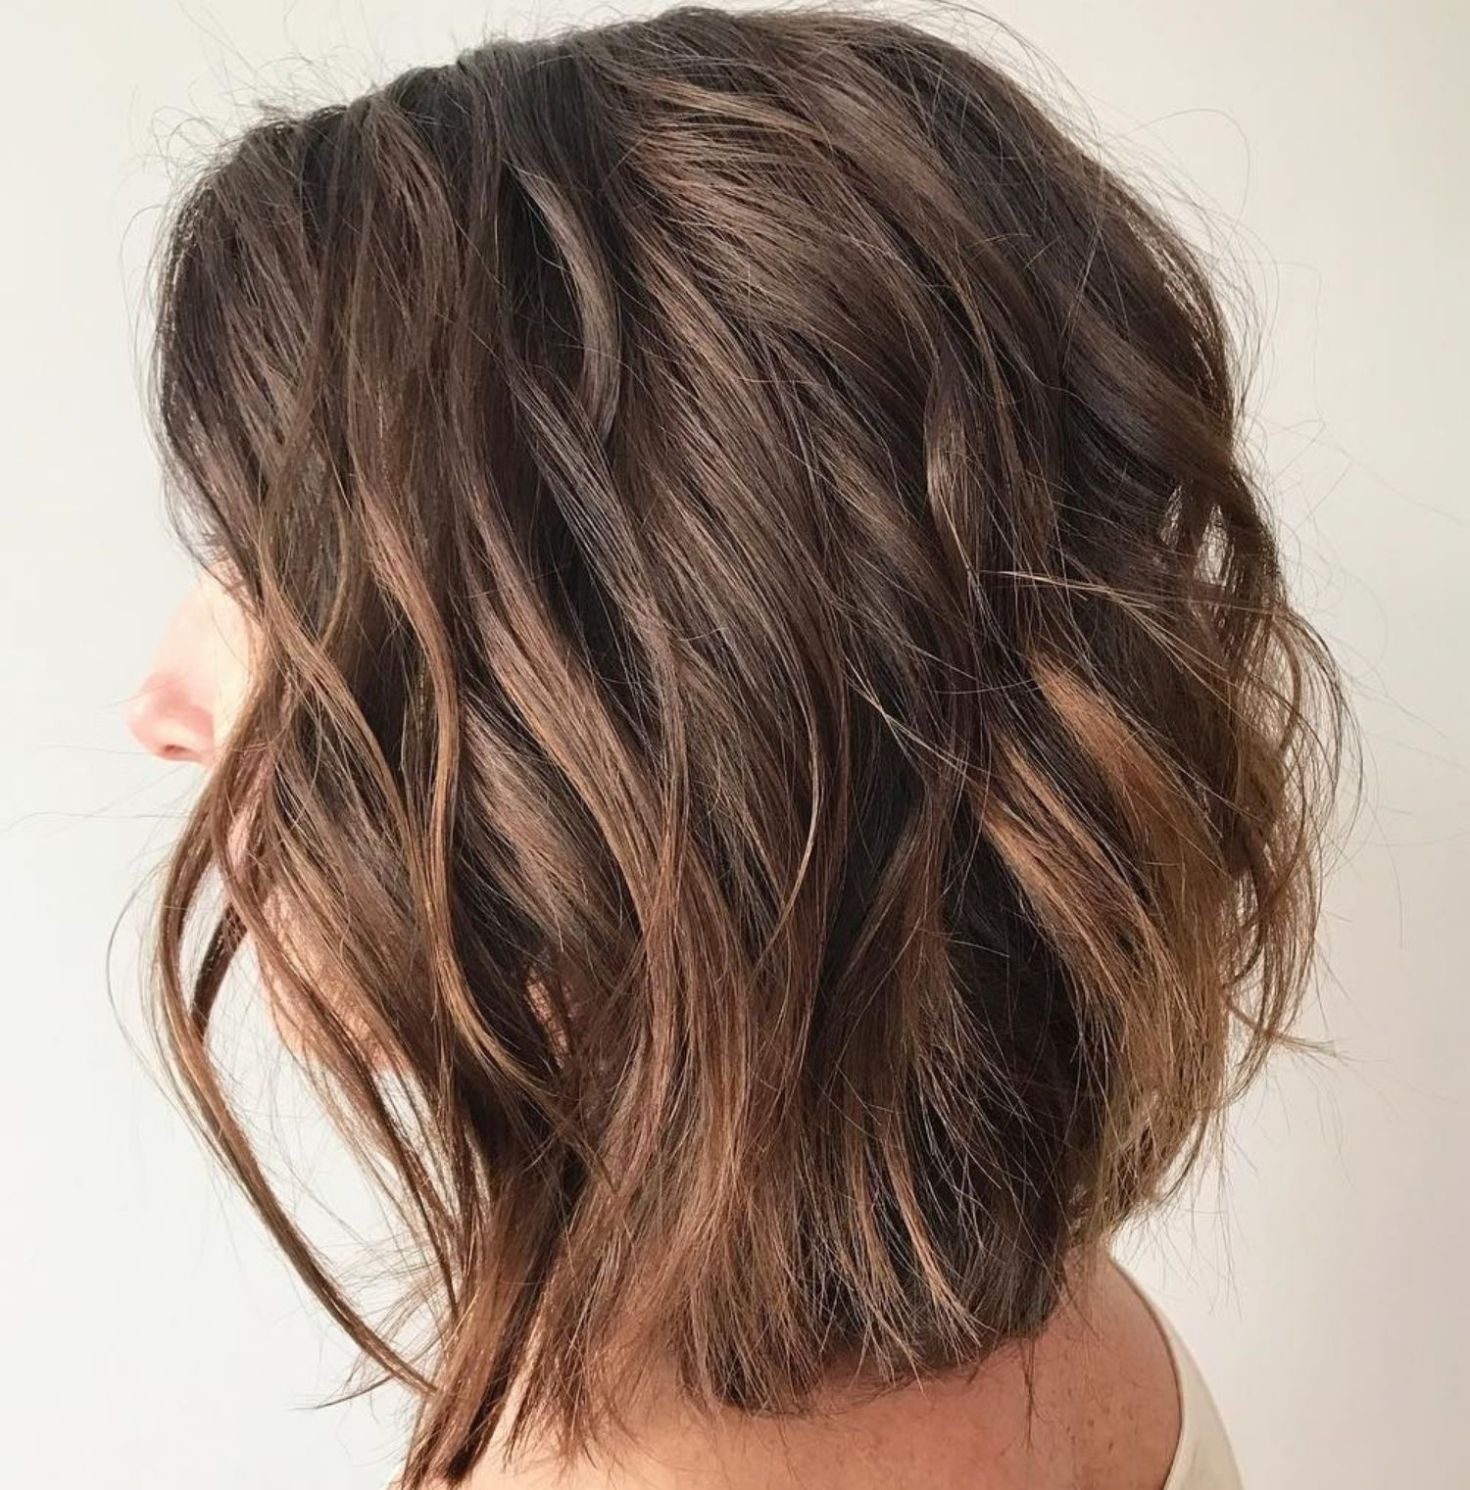 Messy Bob Hairstyles for Your Trendy Casual Looks in Hair